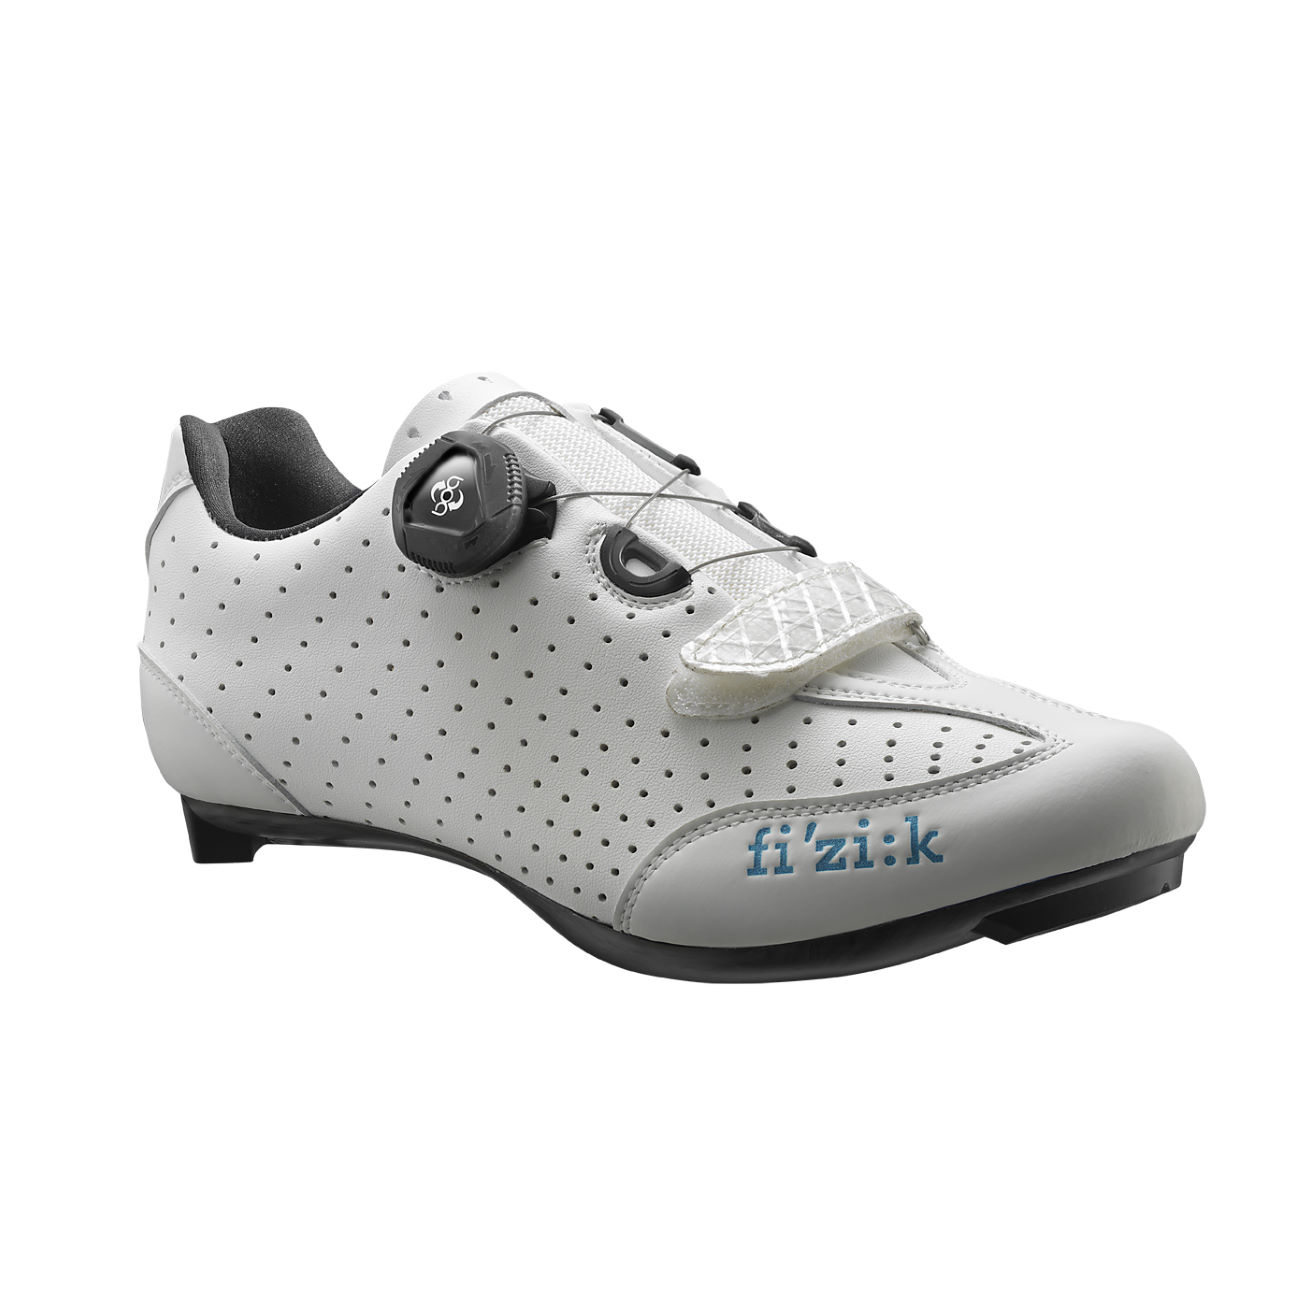 Fizik Road Shoes Review